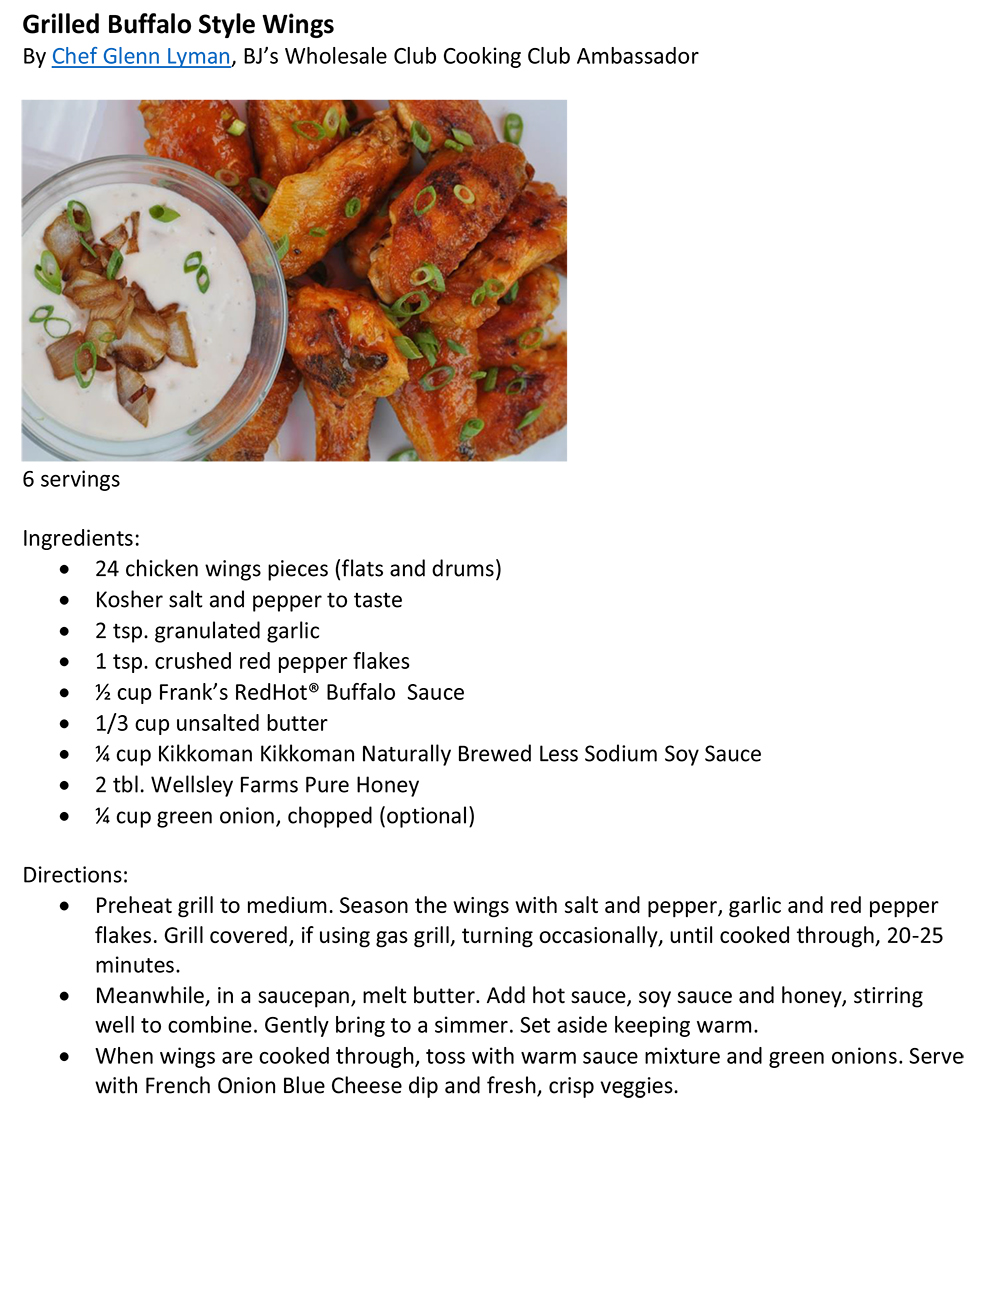 Grilled Style Buffalo Wings with French Onion Dip Recipe